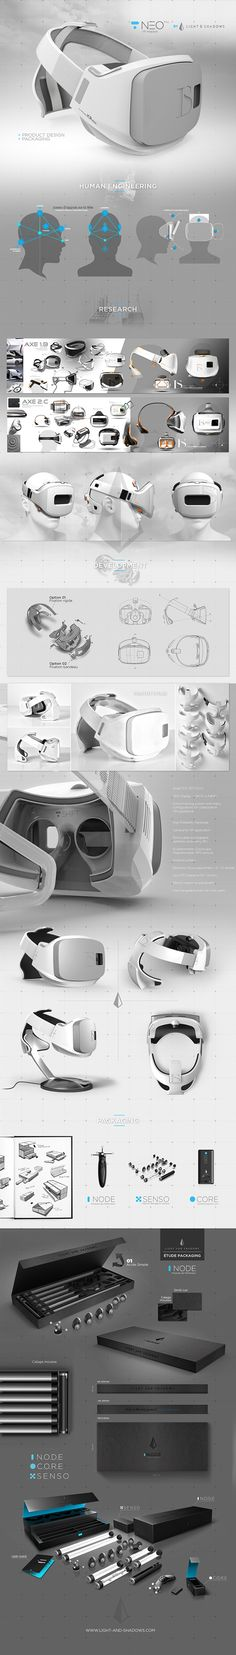 generation of Virtual Reality HMD for professionals.VR headset - -New generation of Virtual Reality HMD for professionals. Cafe Industrial, Industrial Bookshelf, Industrial Interiors, Industrial Office, Industrial Restaurant, Industrial Living, Industrial Furniture, Industrial Apartment, Urban Industrial